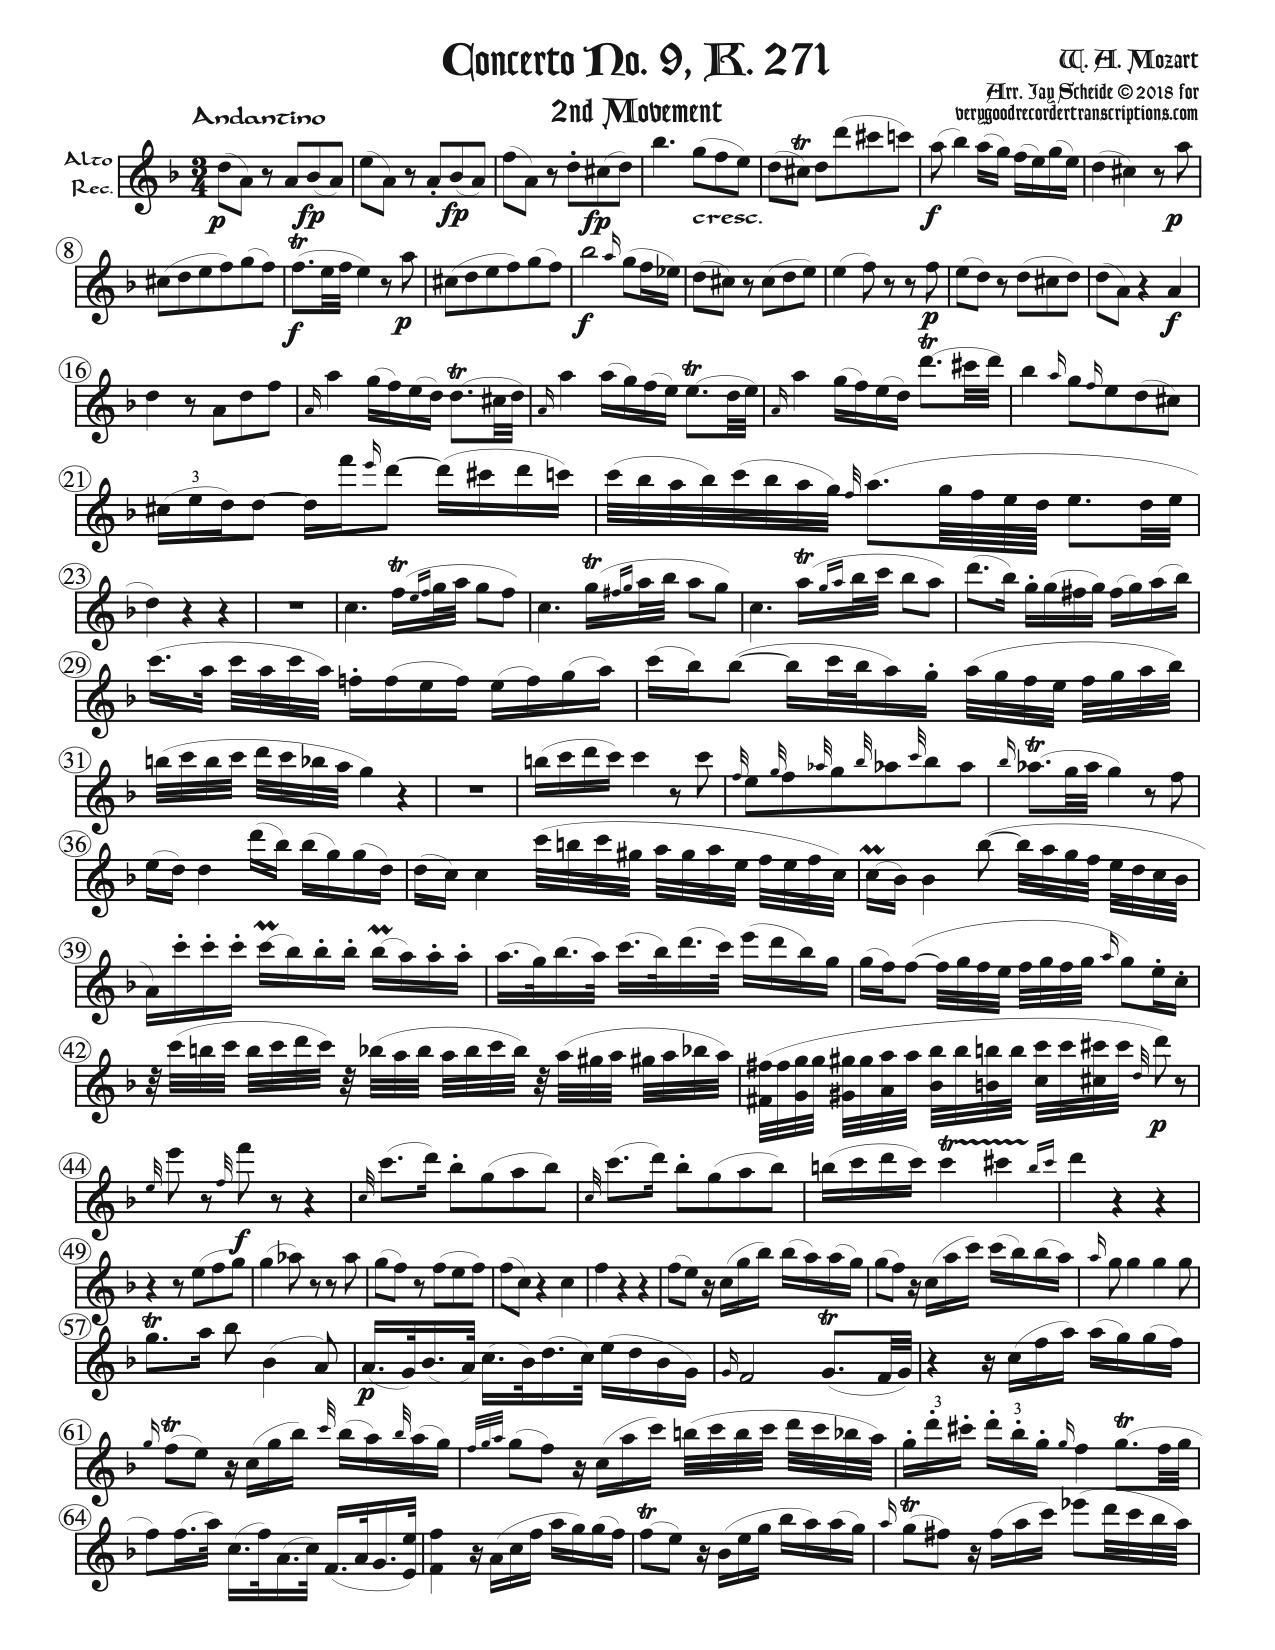 Five slow movements from the Piano Concertos